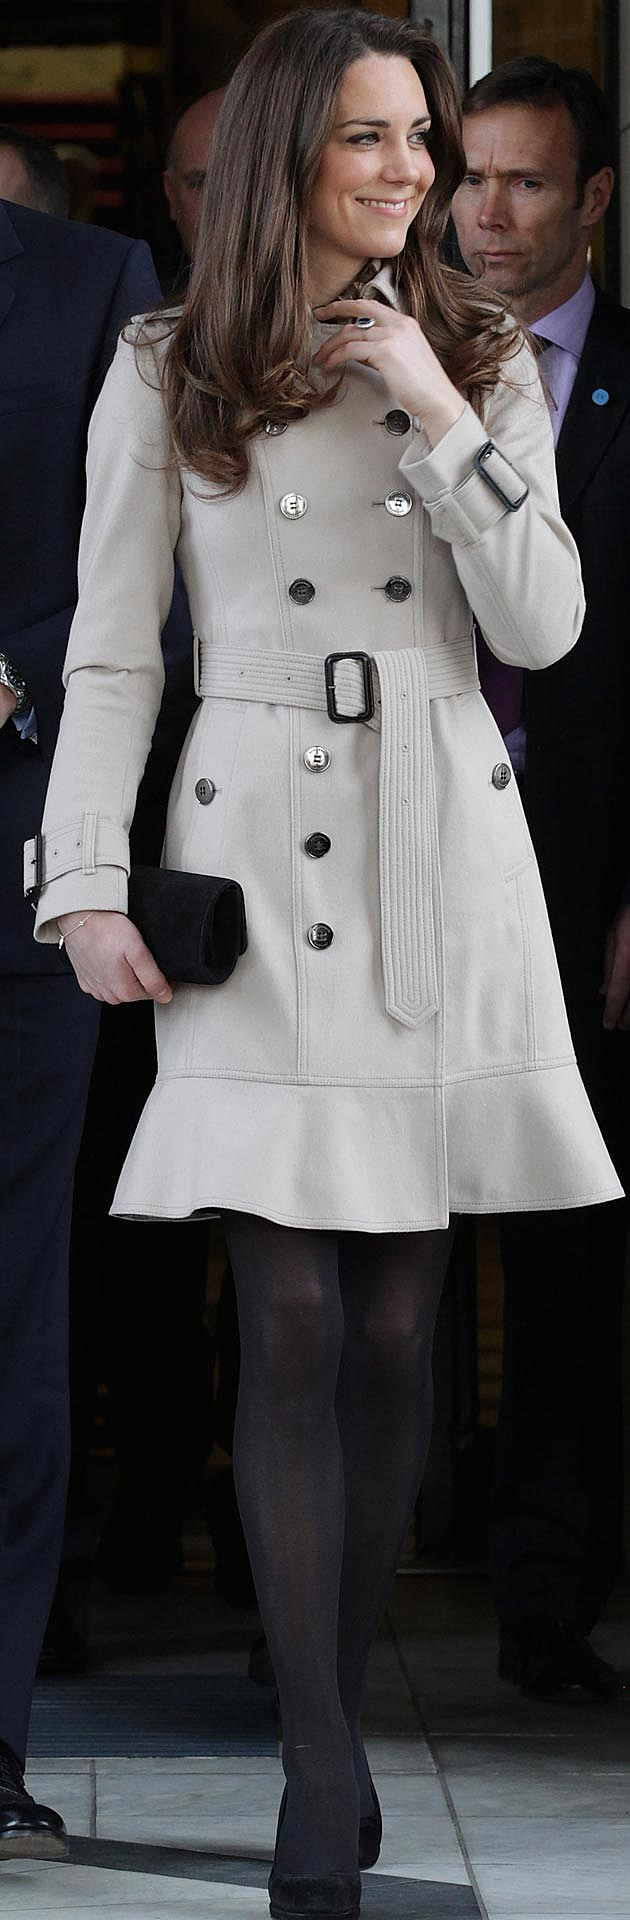 Kate Middleton Burberry Trench